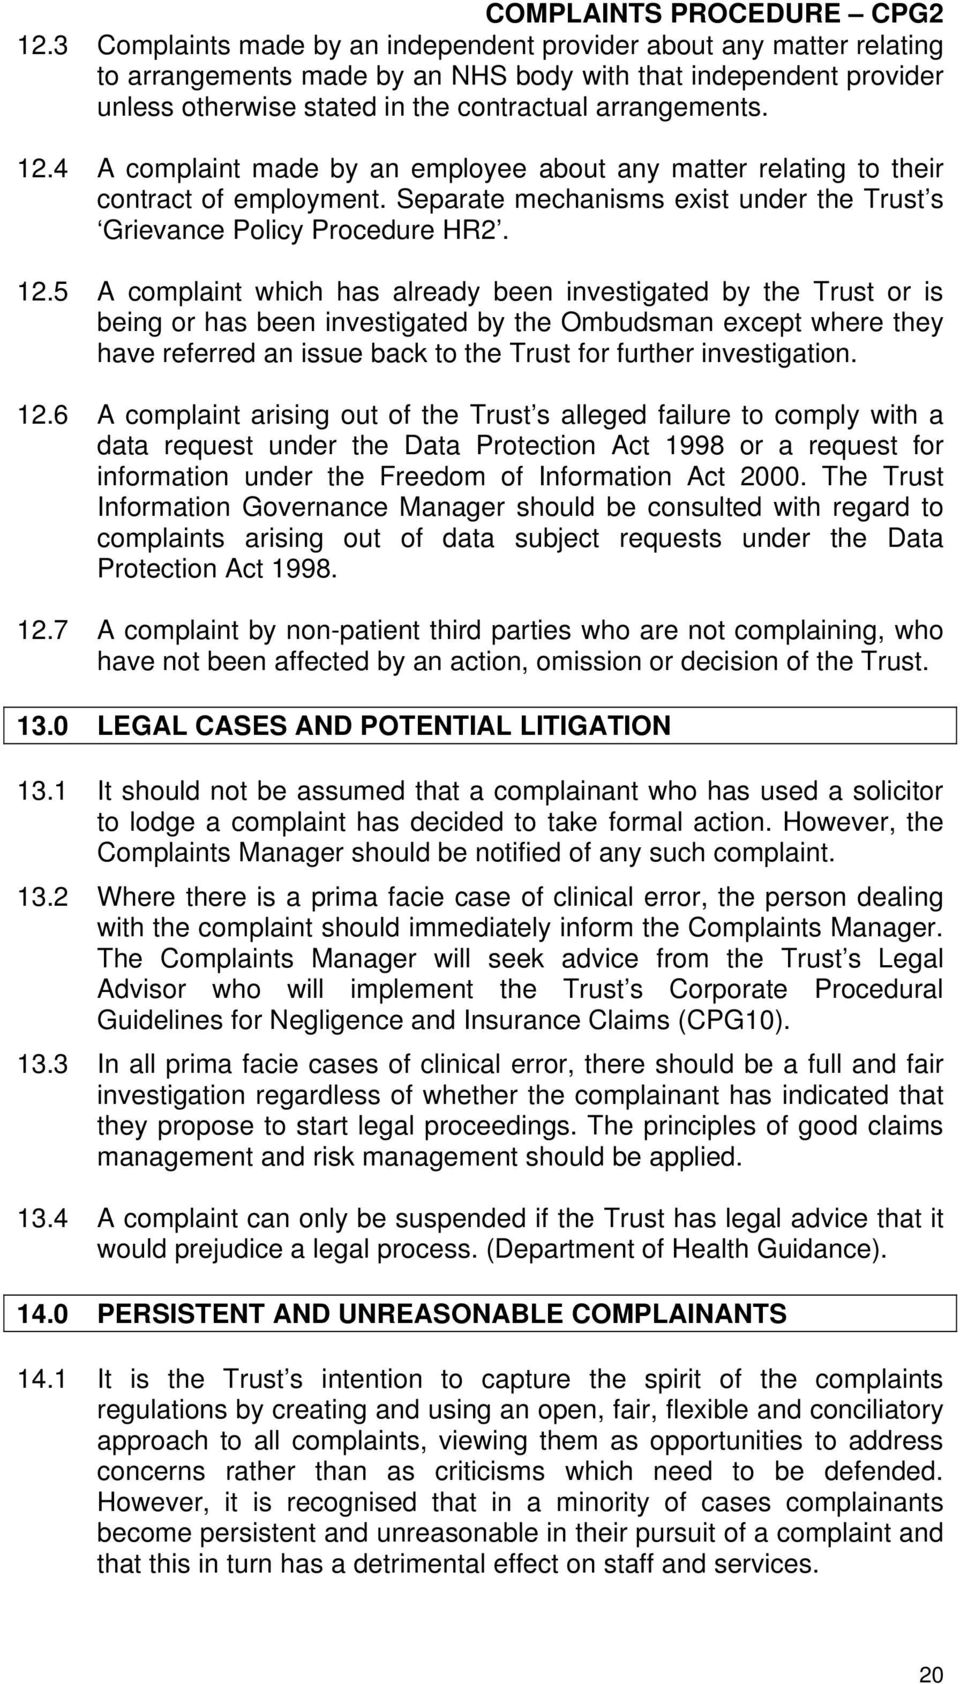 5 A complaint which has already been investigated by the Trust or is being or has been investigated by the Ombudsman except where they have referred an issue back to the Trust for further